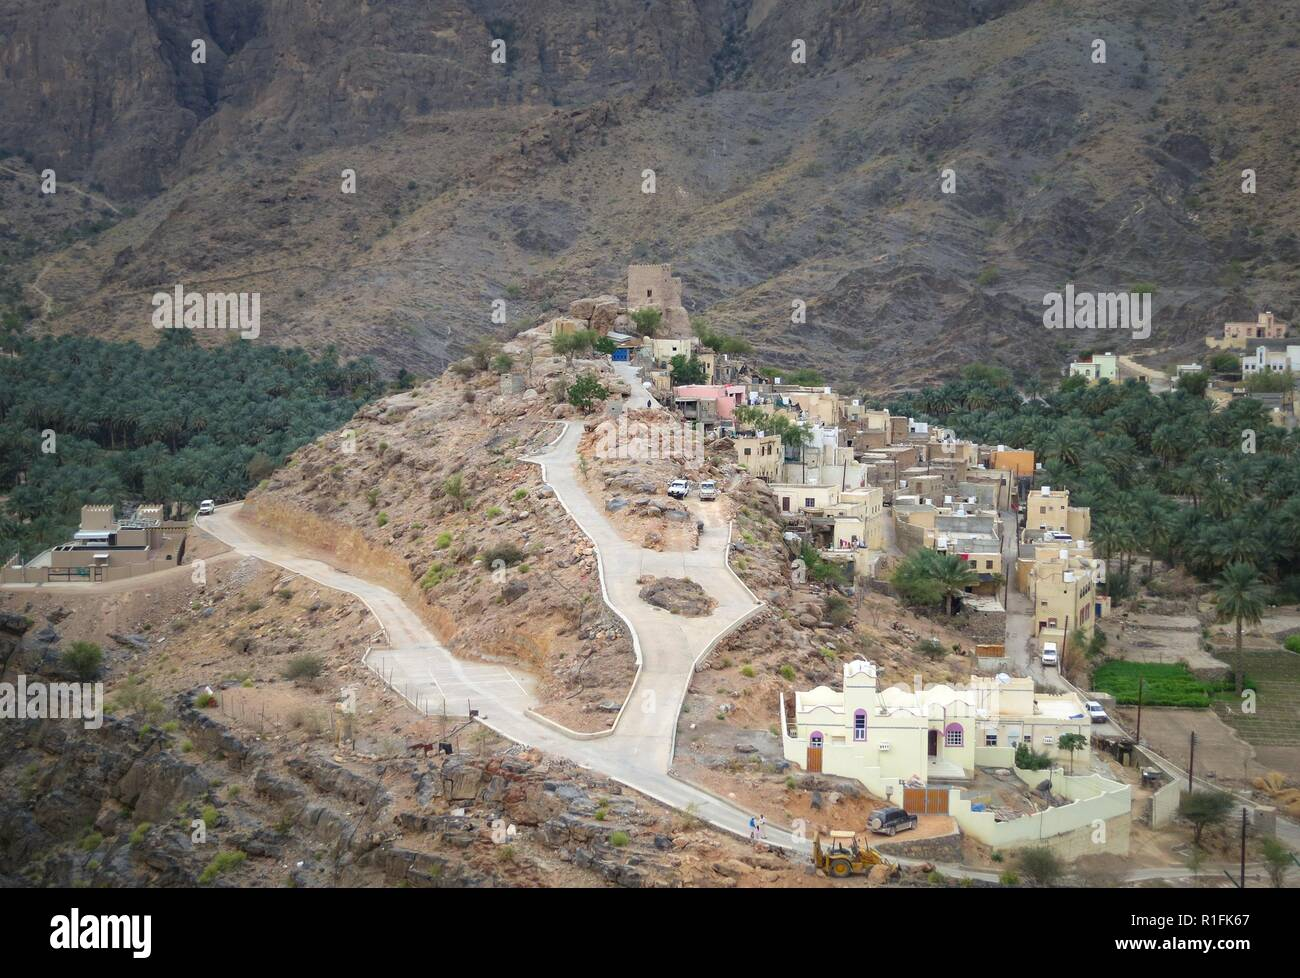 Bilad Sayt, Oman. 21st Nov, 2012. The mountain village of Bilad Sayt (Balad Sayt Village) is picturesquely situated on a slope of the Hajar Mountains (al Hajaral al Gharbi) in Oman. | usage worldwide Credit: dpa/Alamy Live News - Stock Image